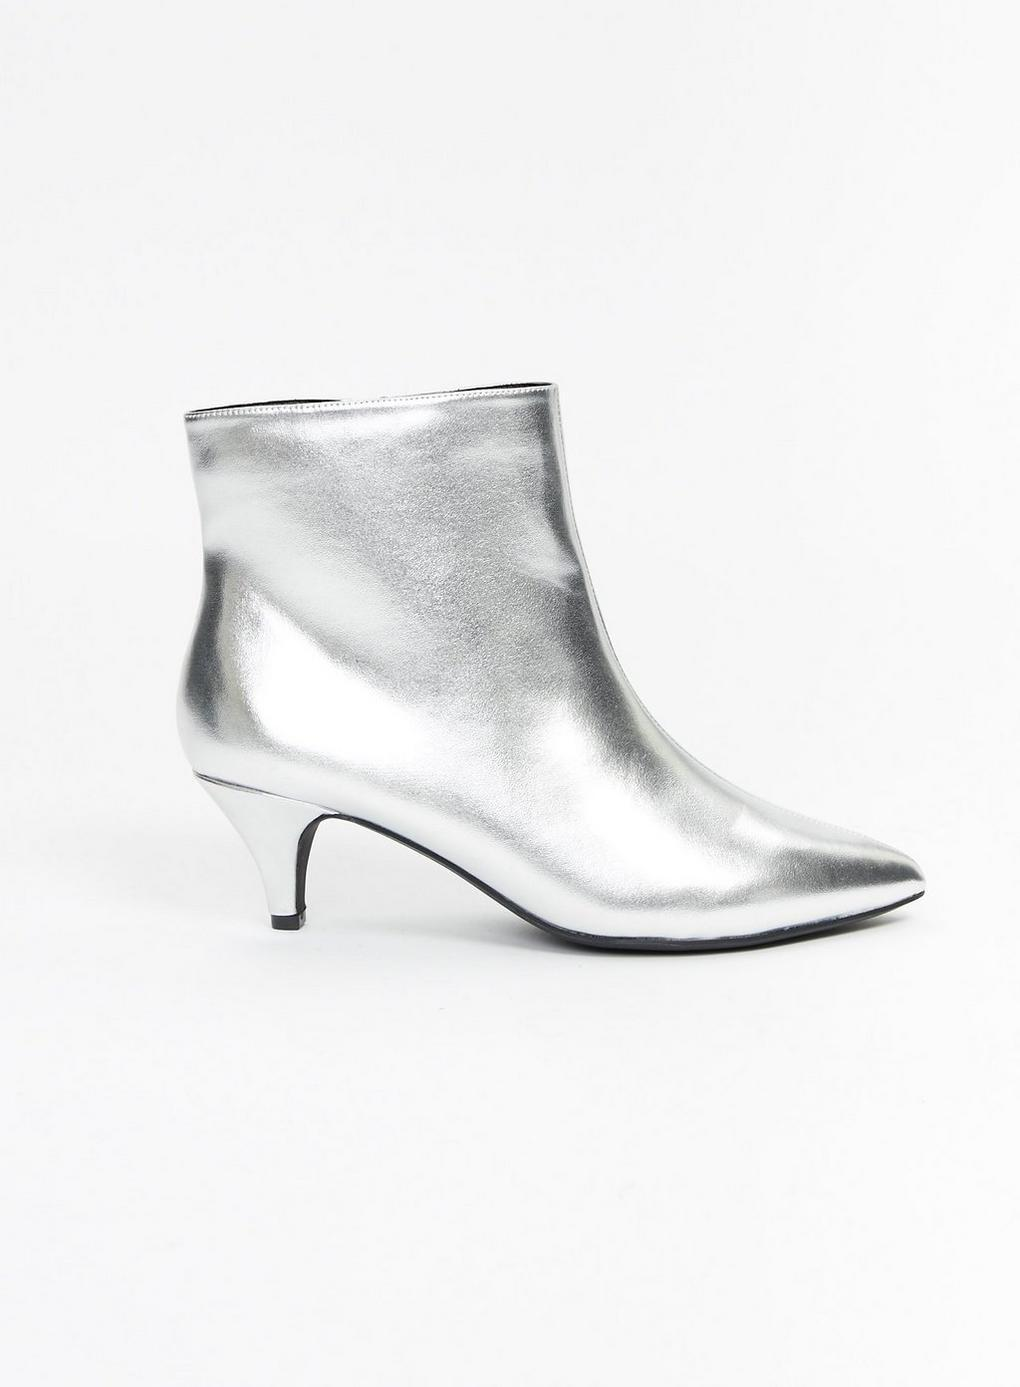 f935fc5540f Evans Extra Wide Fit Silver Metallic Kitten Heel Ankle Boots